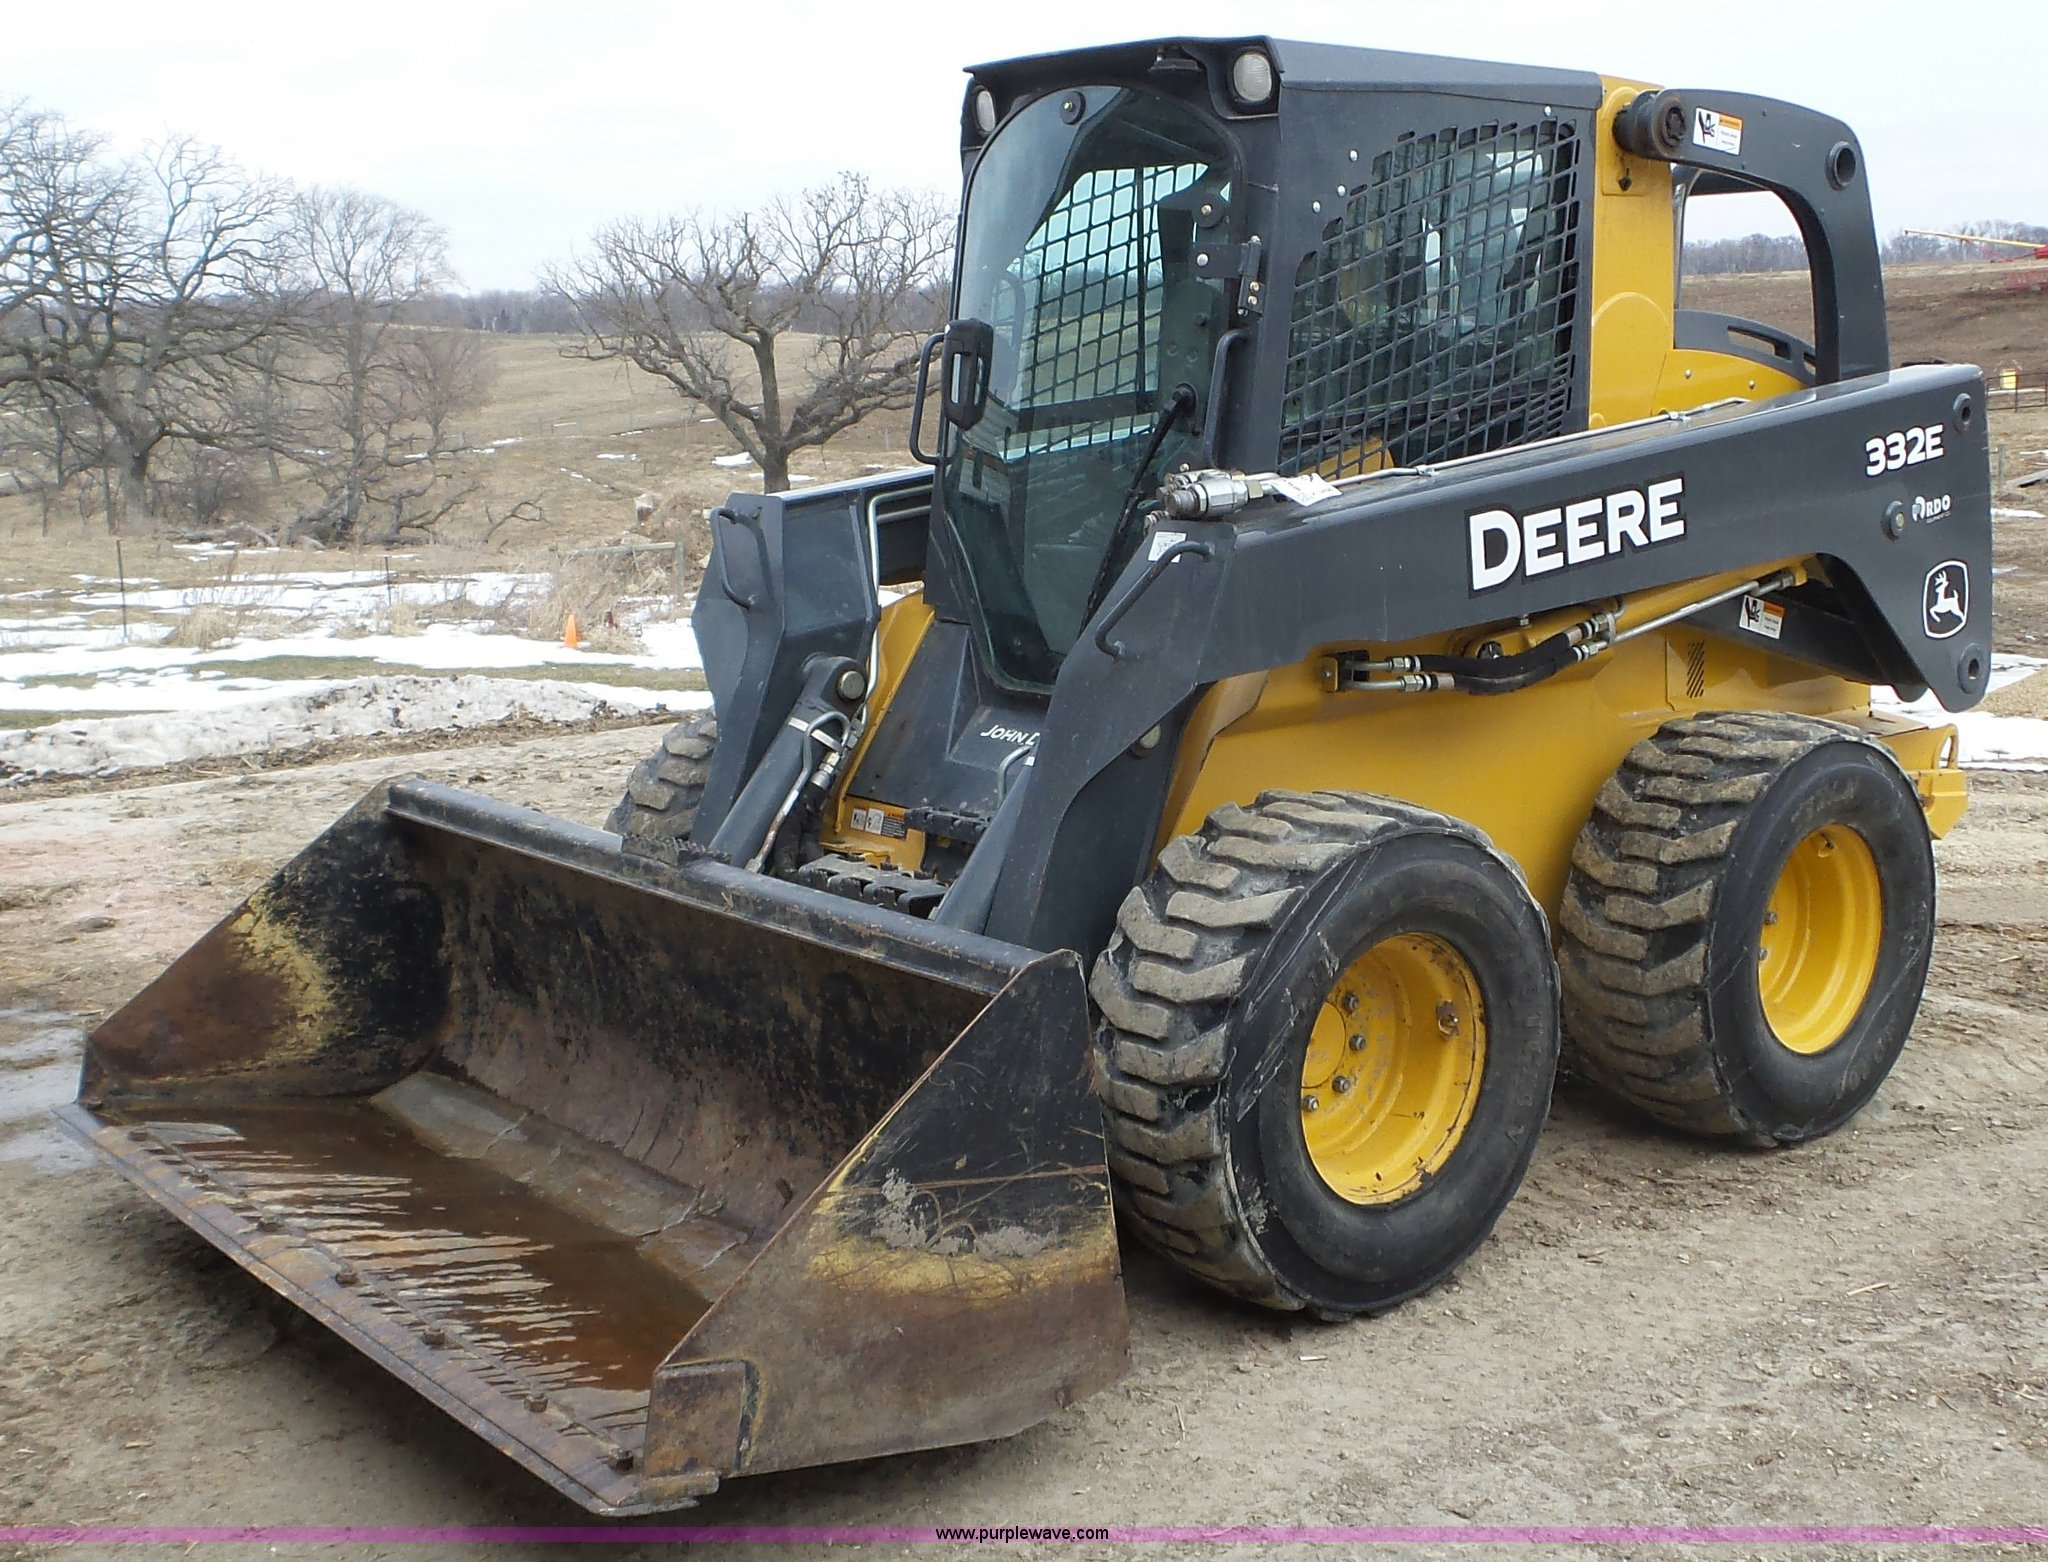 John Deere Skid Steer >> 2013 John Deere 332e Skid Steer Item K3494 Sold March 3